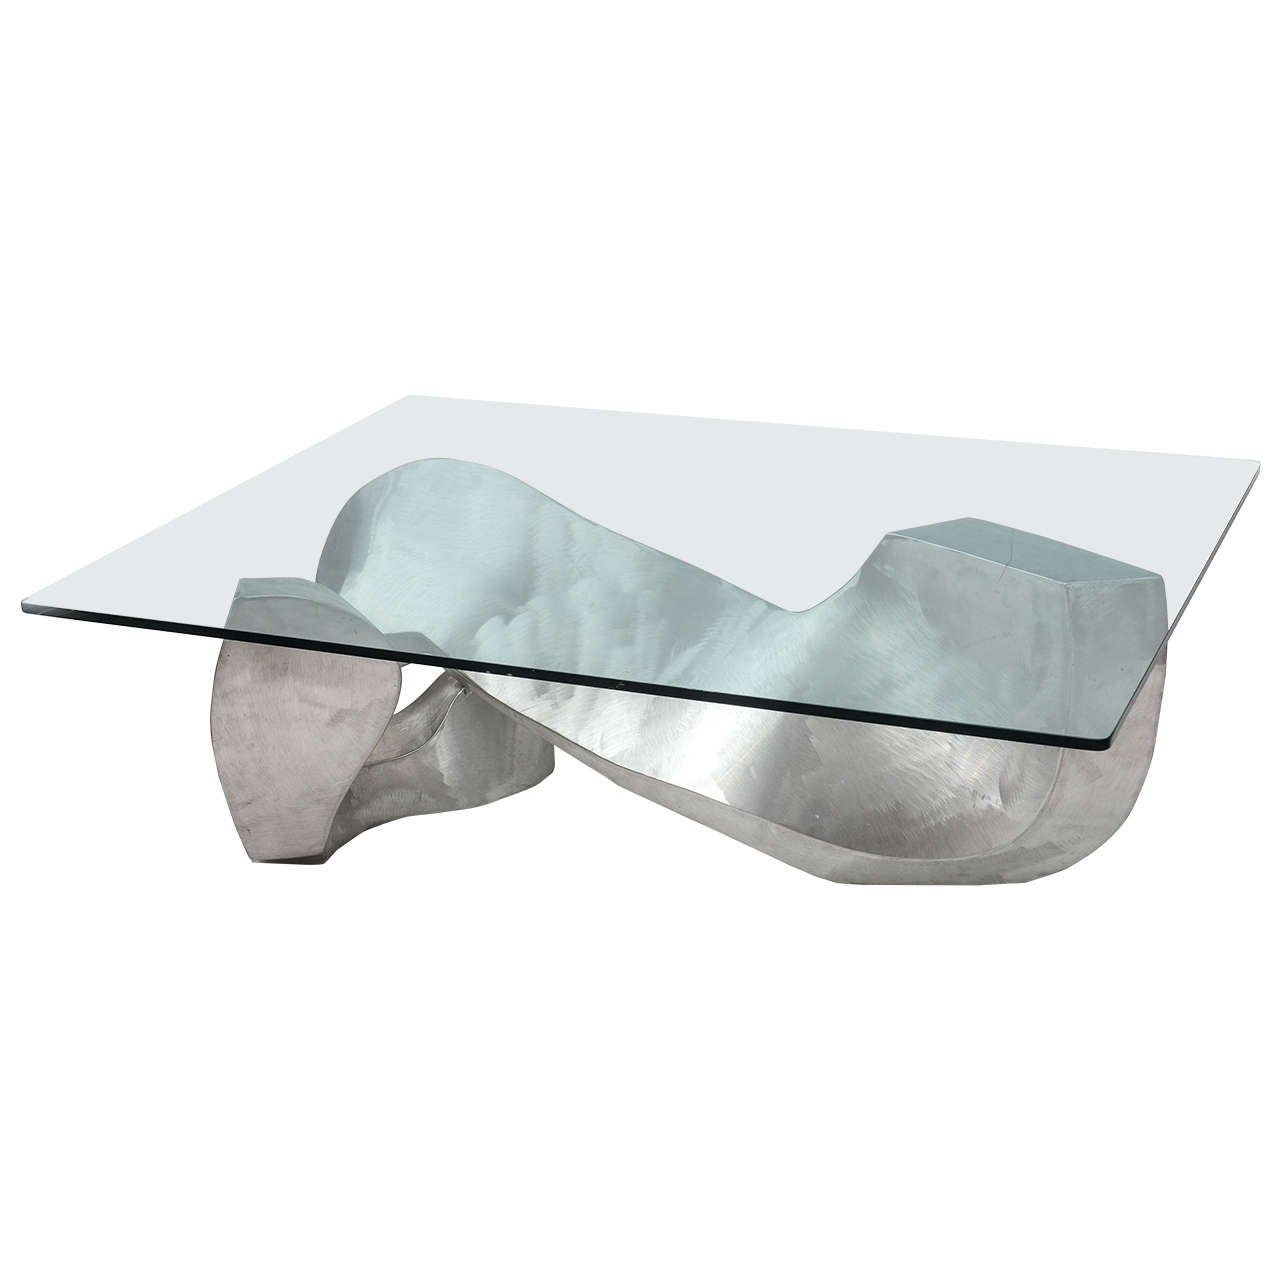 Bill Barrett Fabricated Aluminum Sculpture Coffee Table For Sale